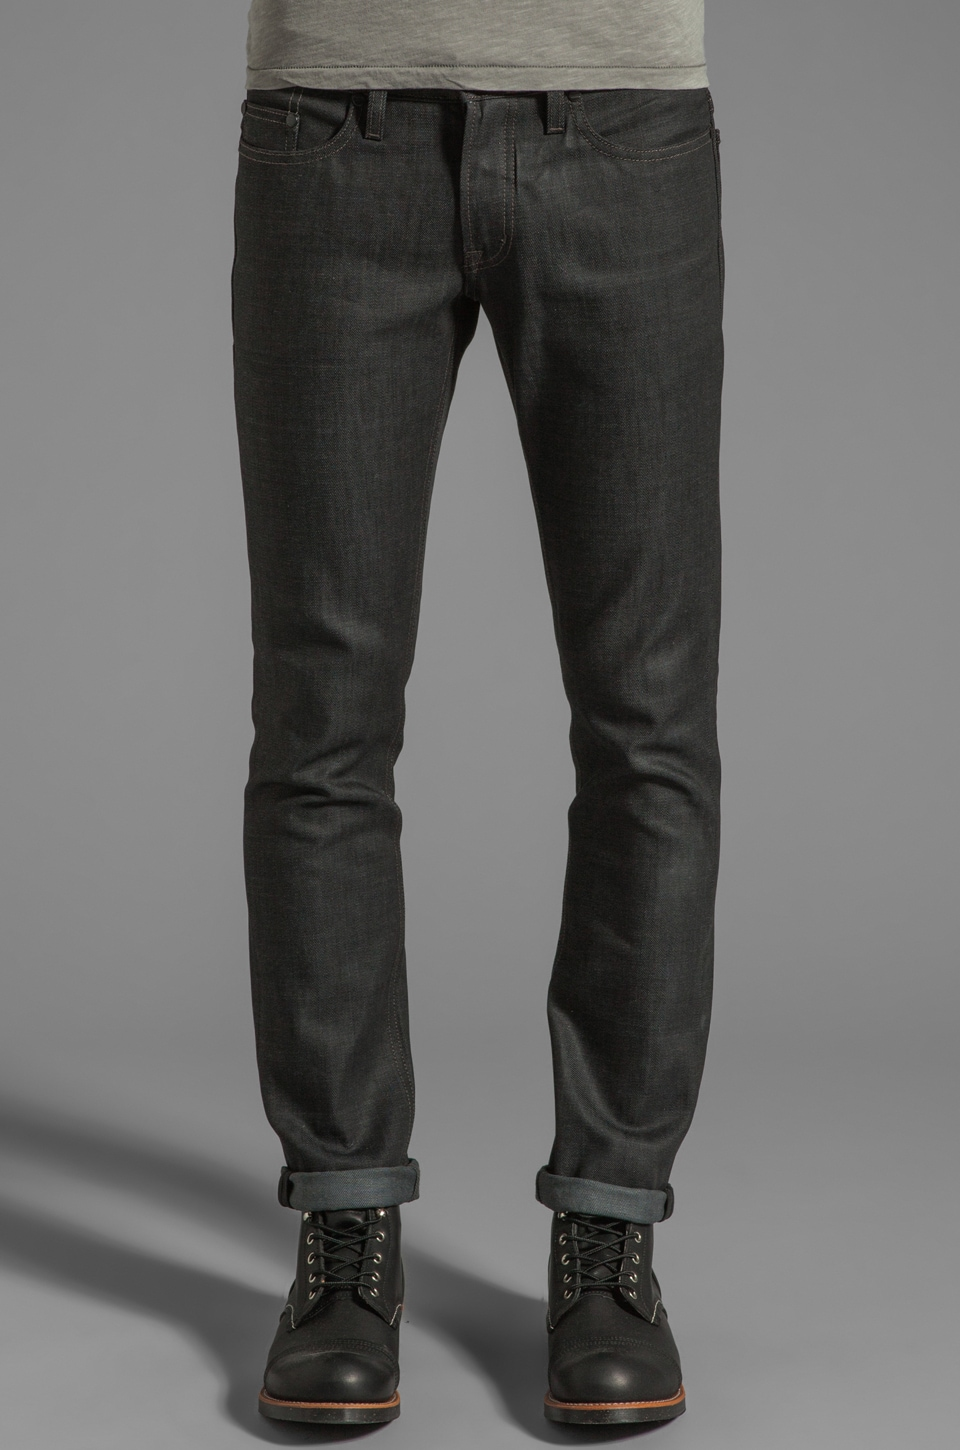 COMUNE Lindon Jean in Charcoal Indigo